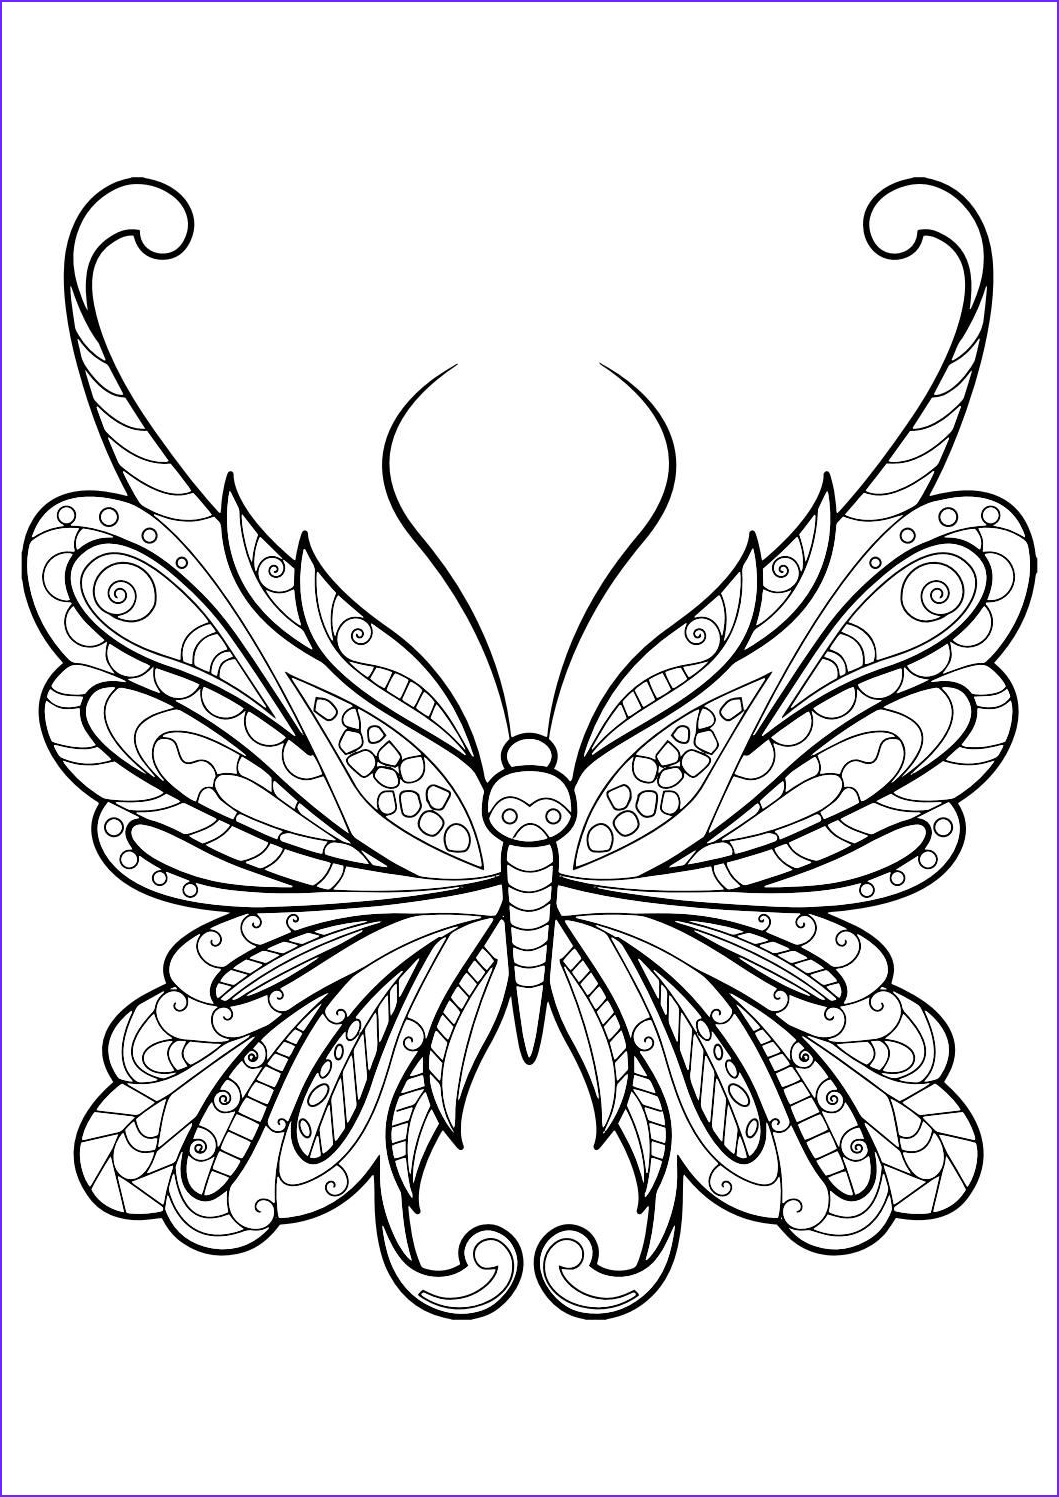 Butterfly Coloring Pages For Adults Awesome Photography Adult Butterfly Coloring Book